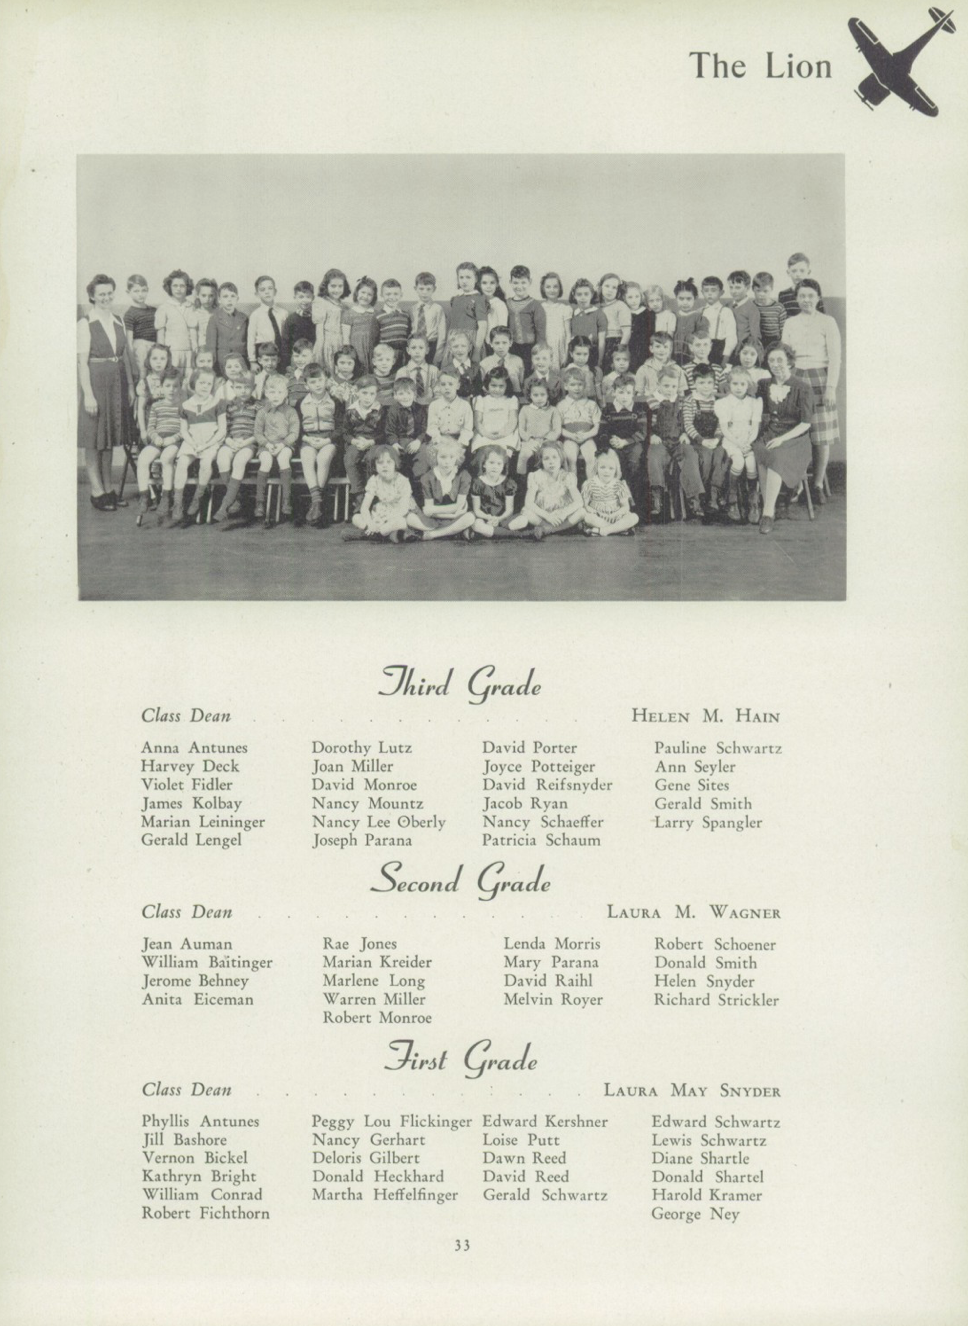 The combined first, second, and third grade photo from the Womelsdorf 1943 yearbook. Nancy Oberly is listed as being in third grade, but her position in the photo isn't.